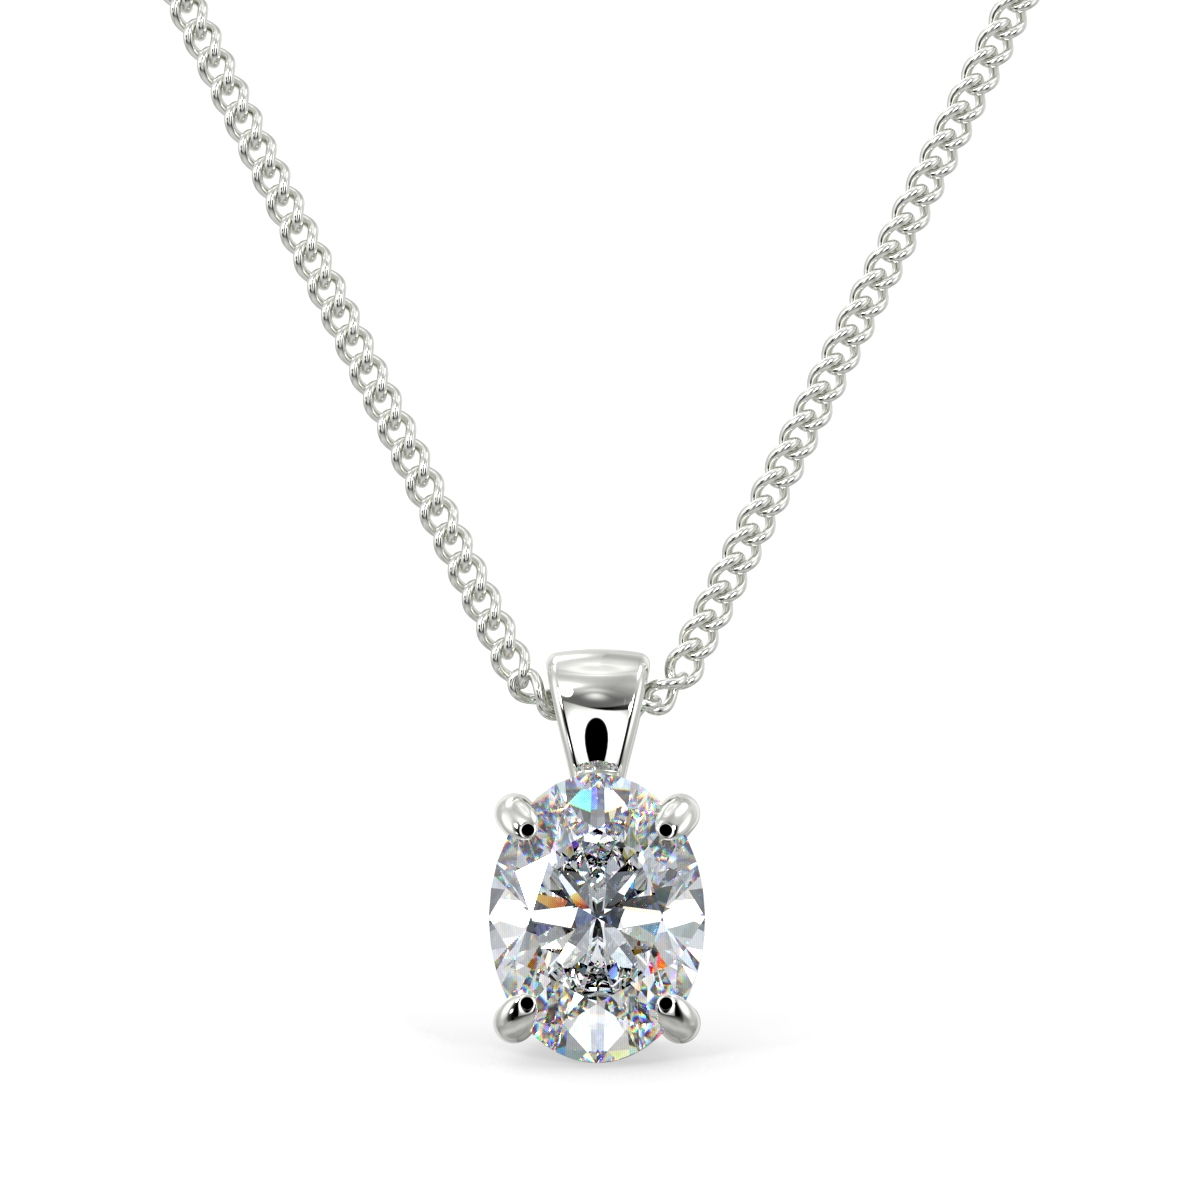 Oval Solitaire Pendnet